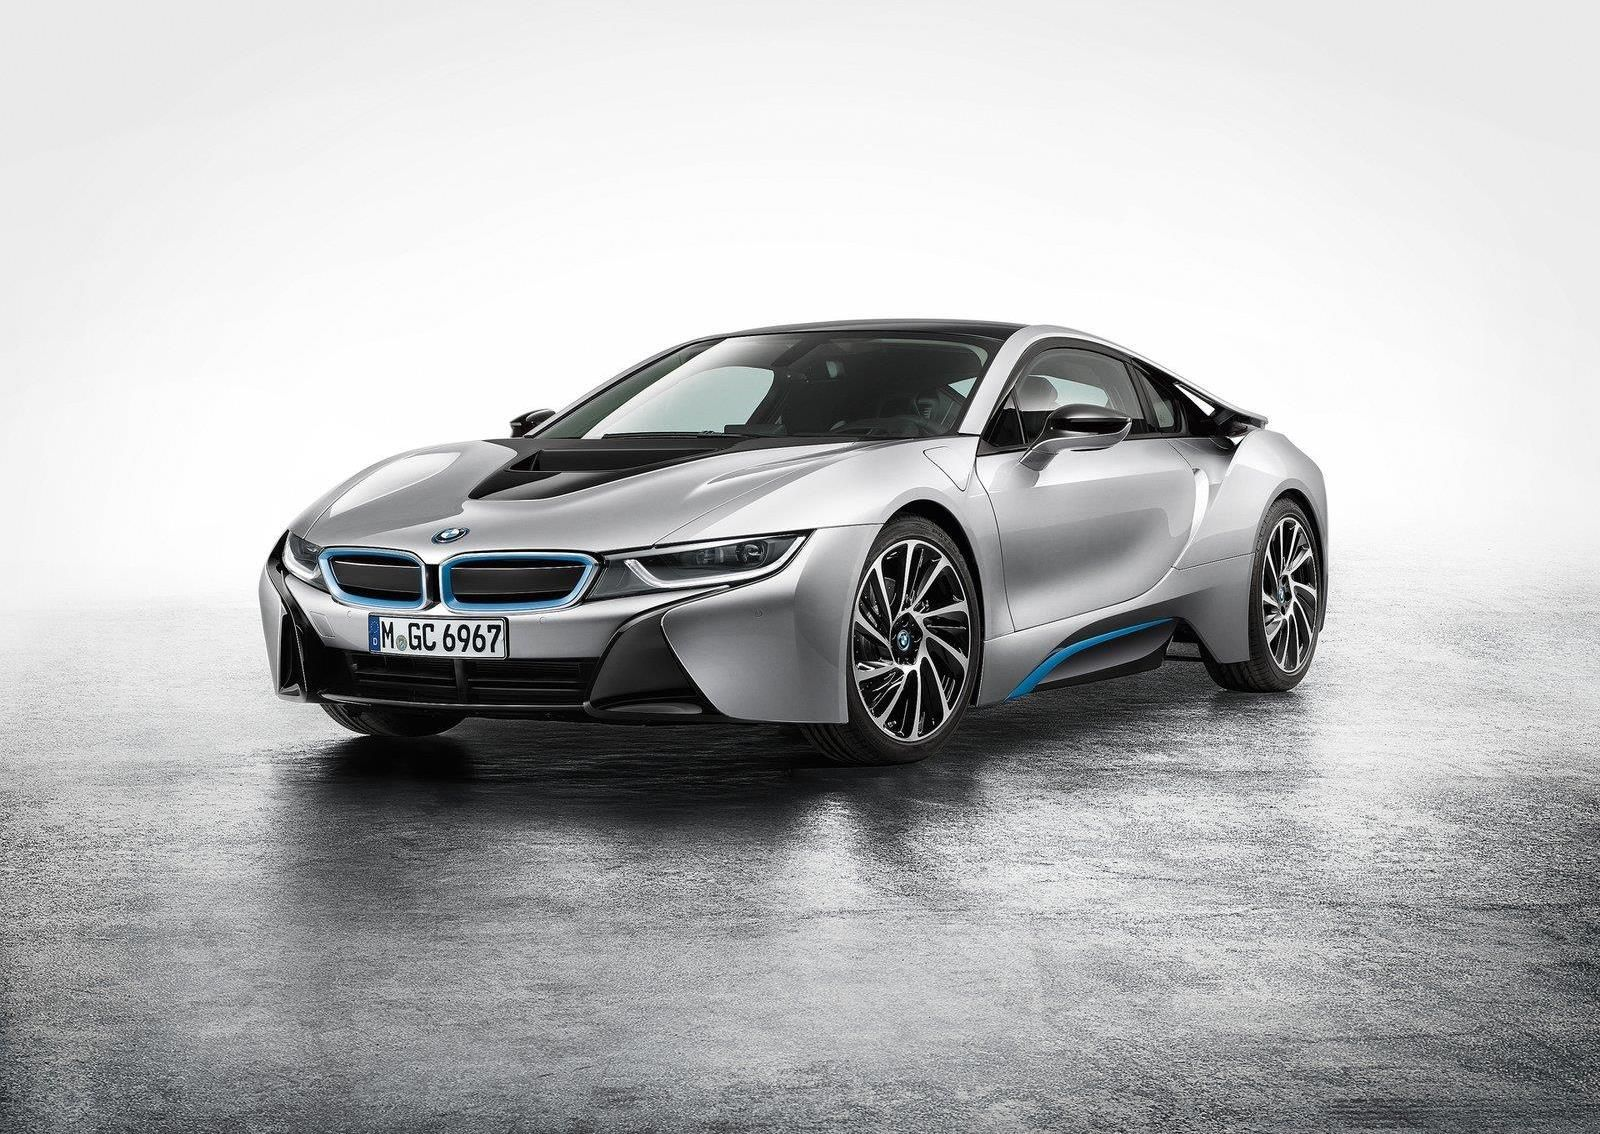 Bmw i8 hybrid sports car launched in india at inr 2 29 crore maxabout autos pinterest bmw i8 bmw and sports cars